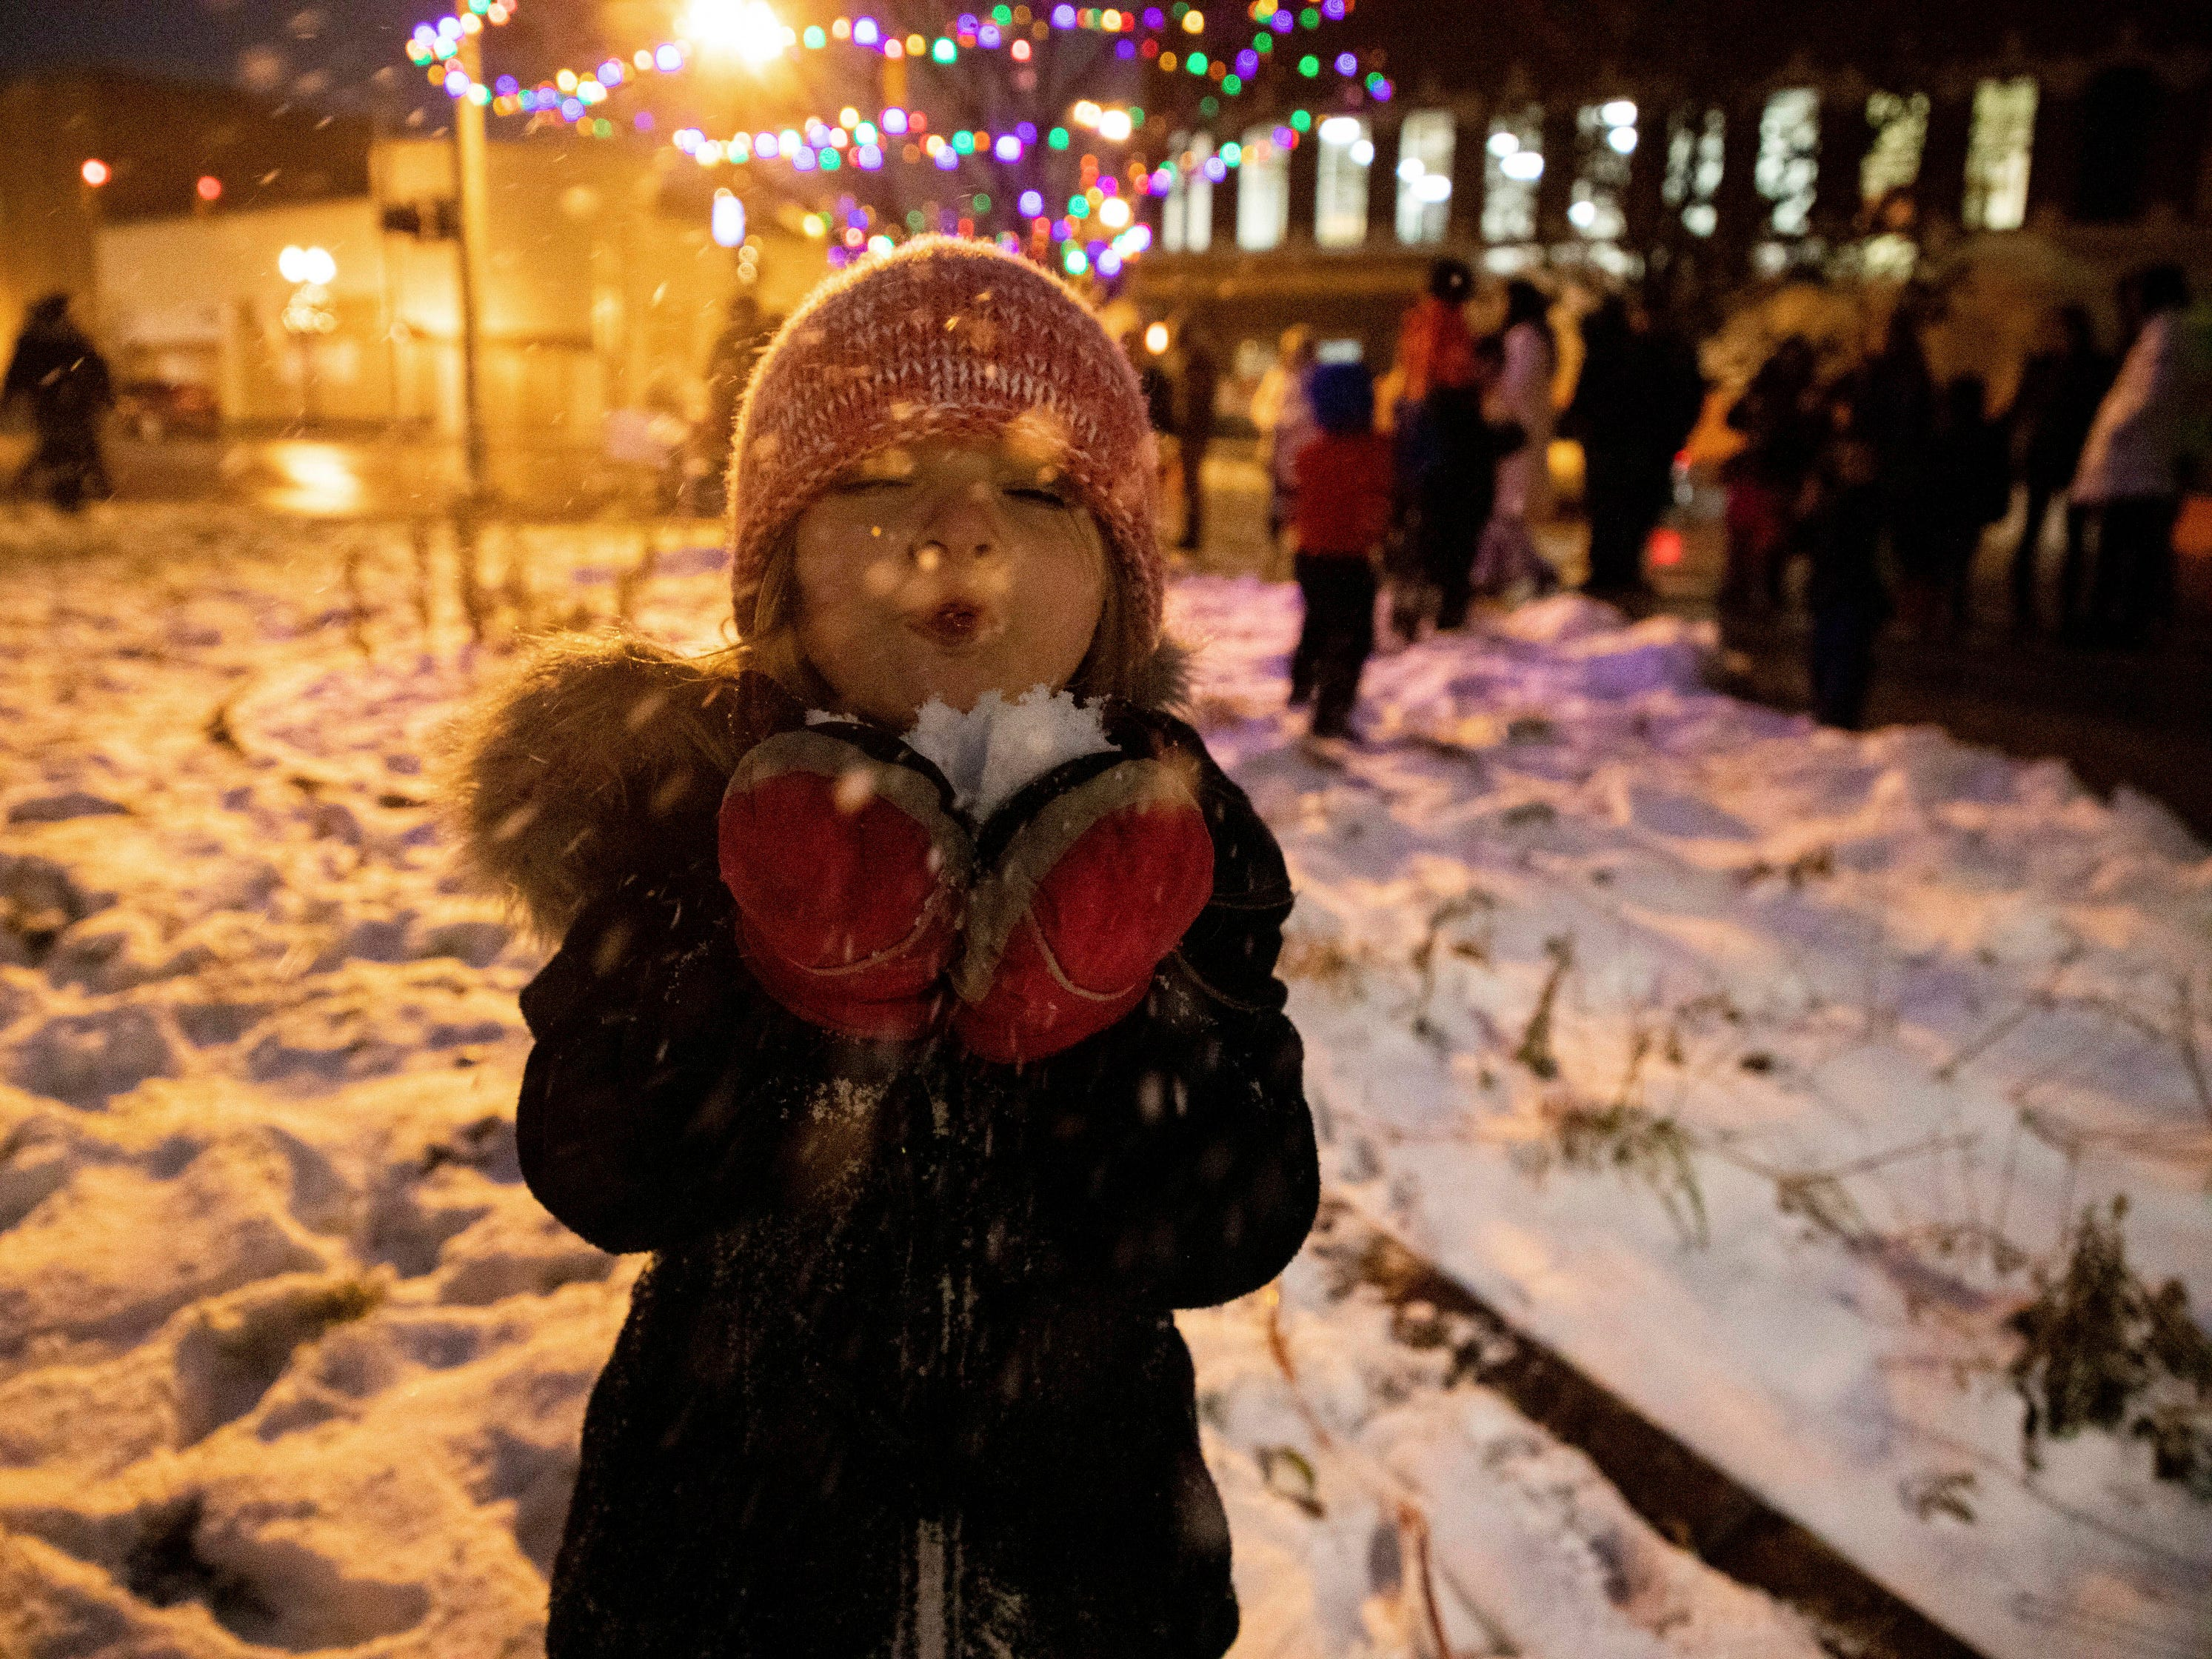 Camrynn LeMay, 4, blows snow into the air during the Christmas tree lighting celebration on Nov. 29, 2018, in downtown Flint, Mich.